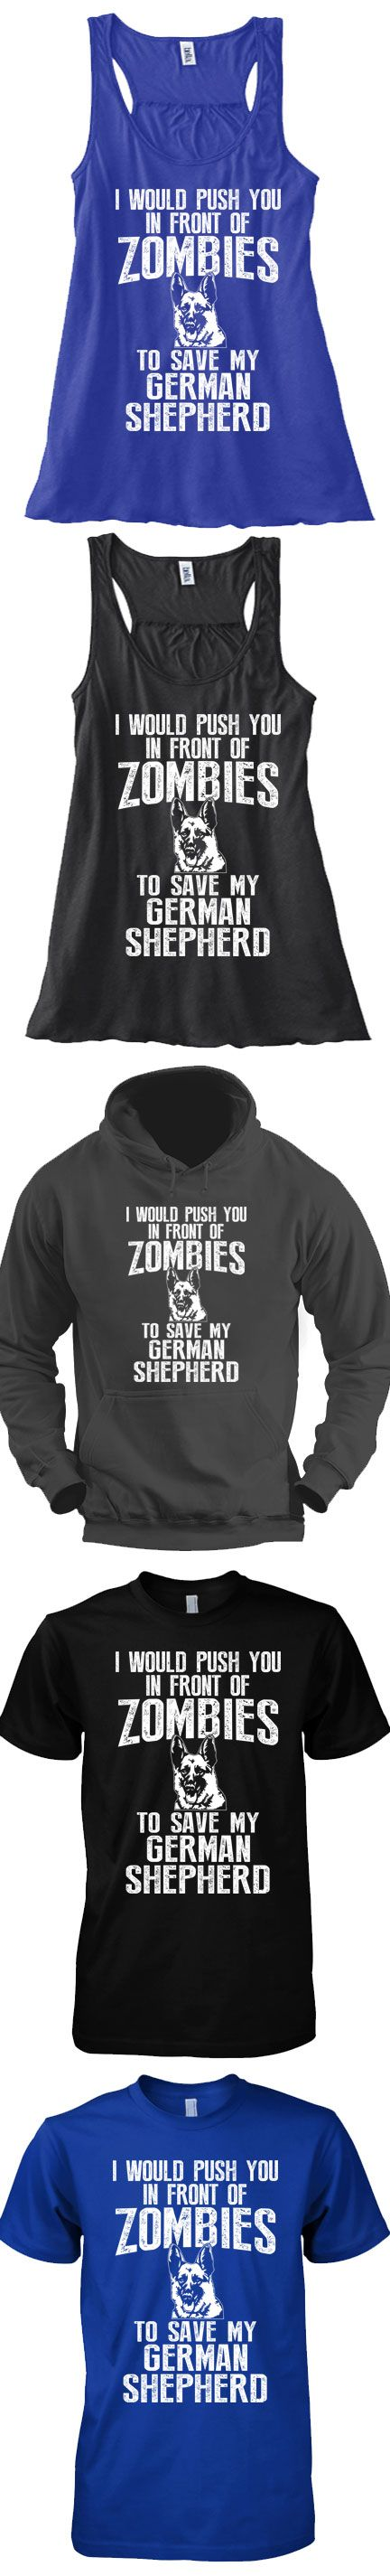 Love German Shepherd? Then Click The Image To Buy It Now or Tag Someone You Want To Buy This For.